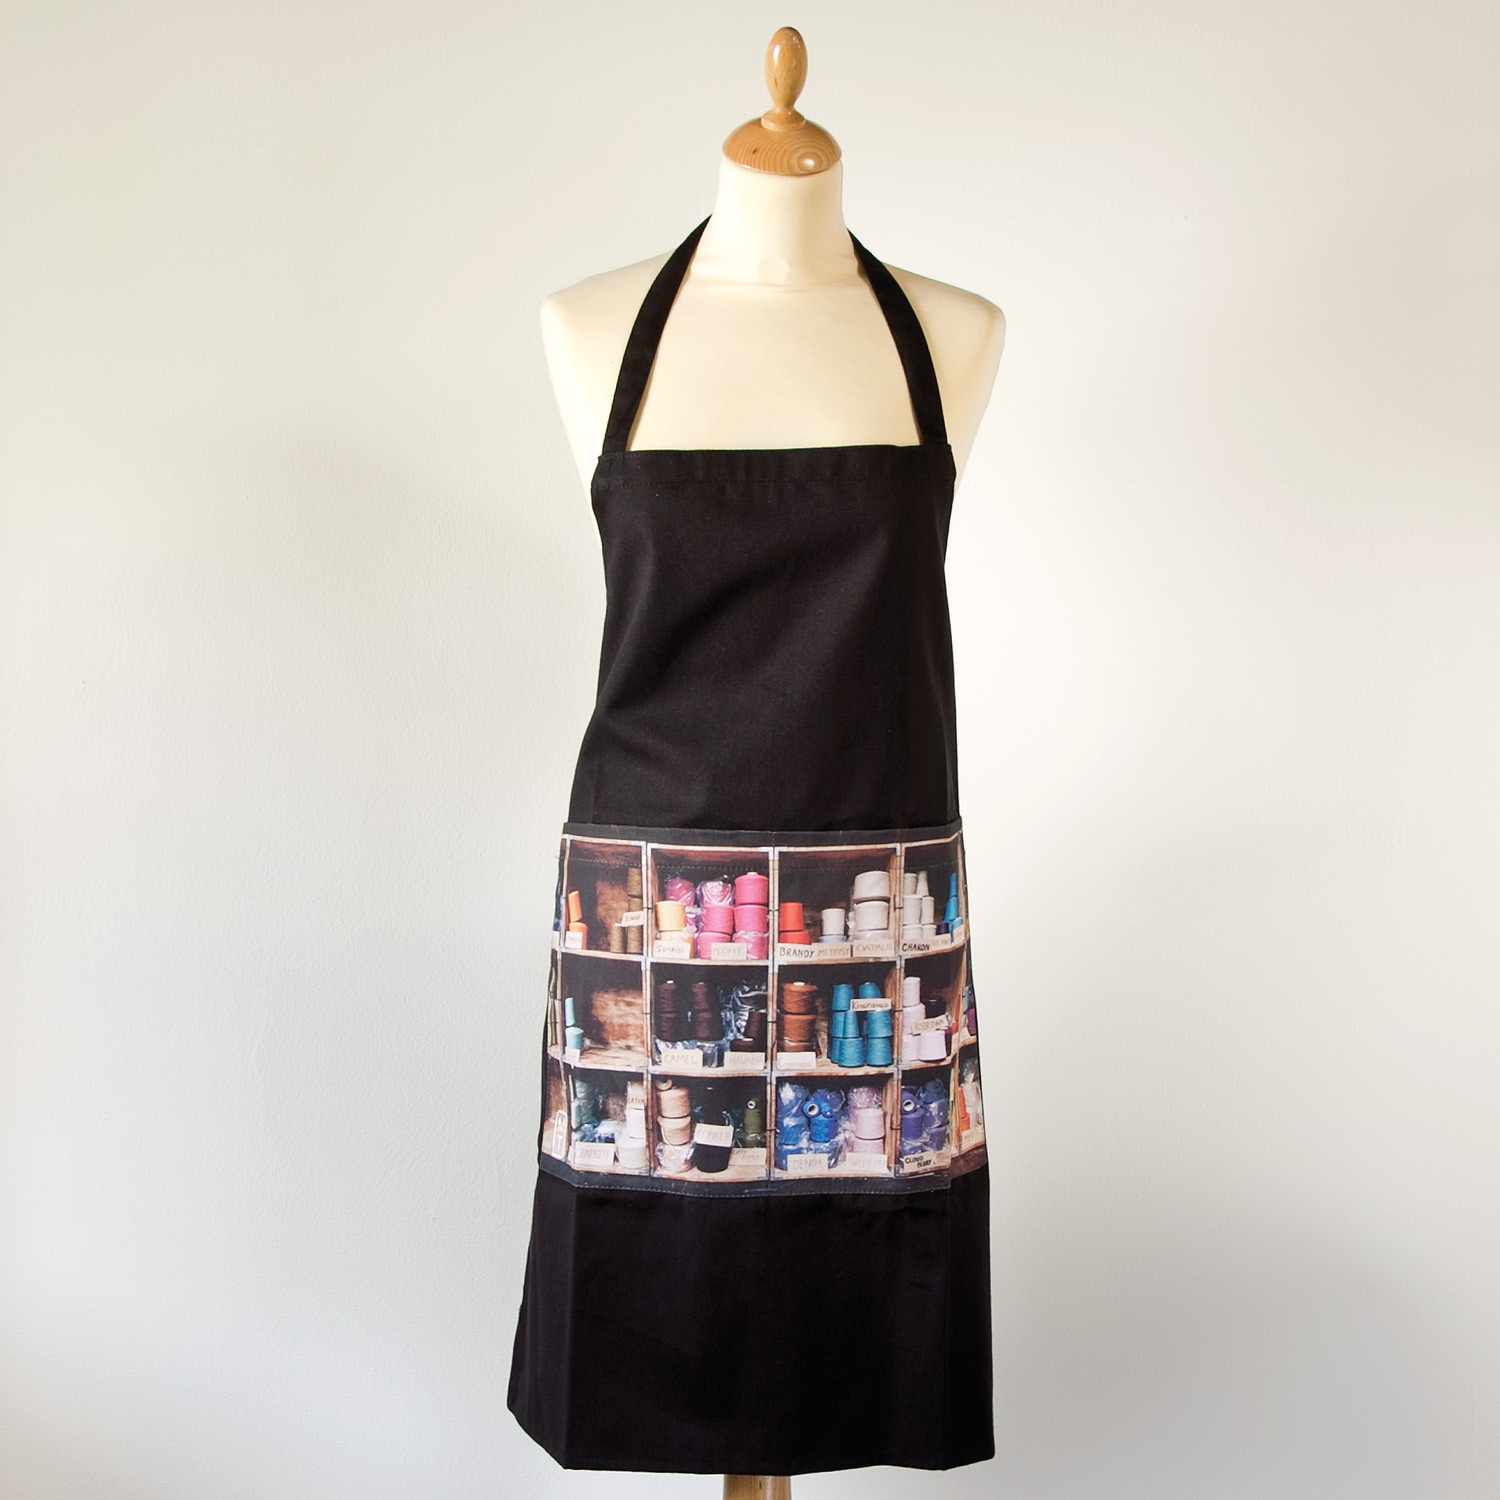 Apron with yarn store image